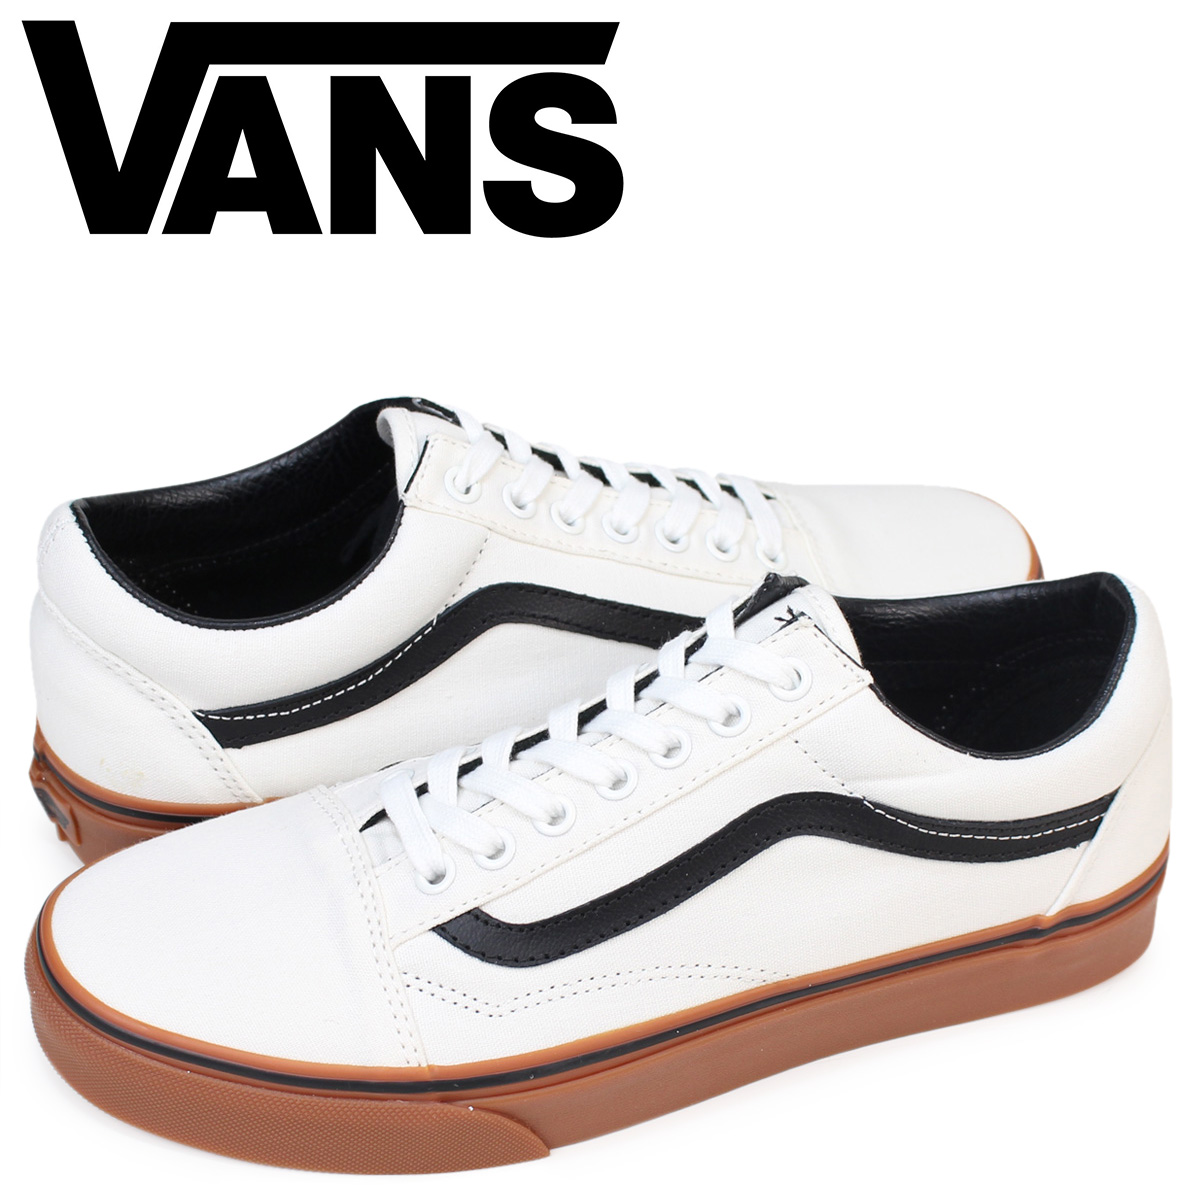 vans old skool gum sole sale